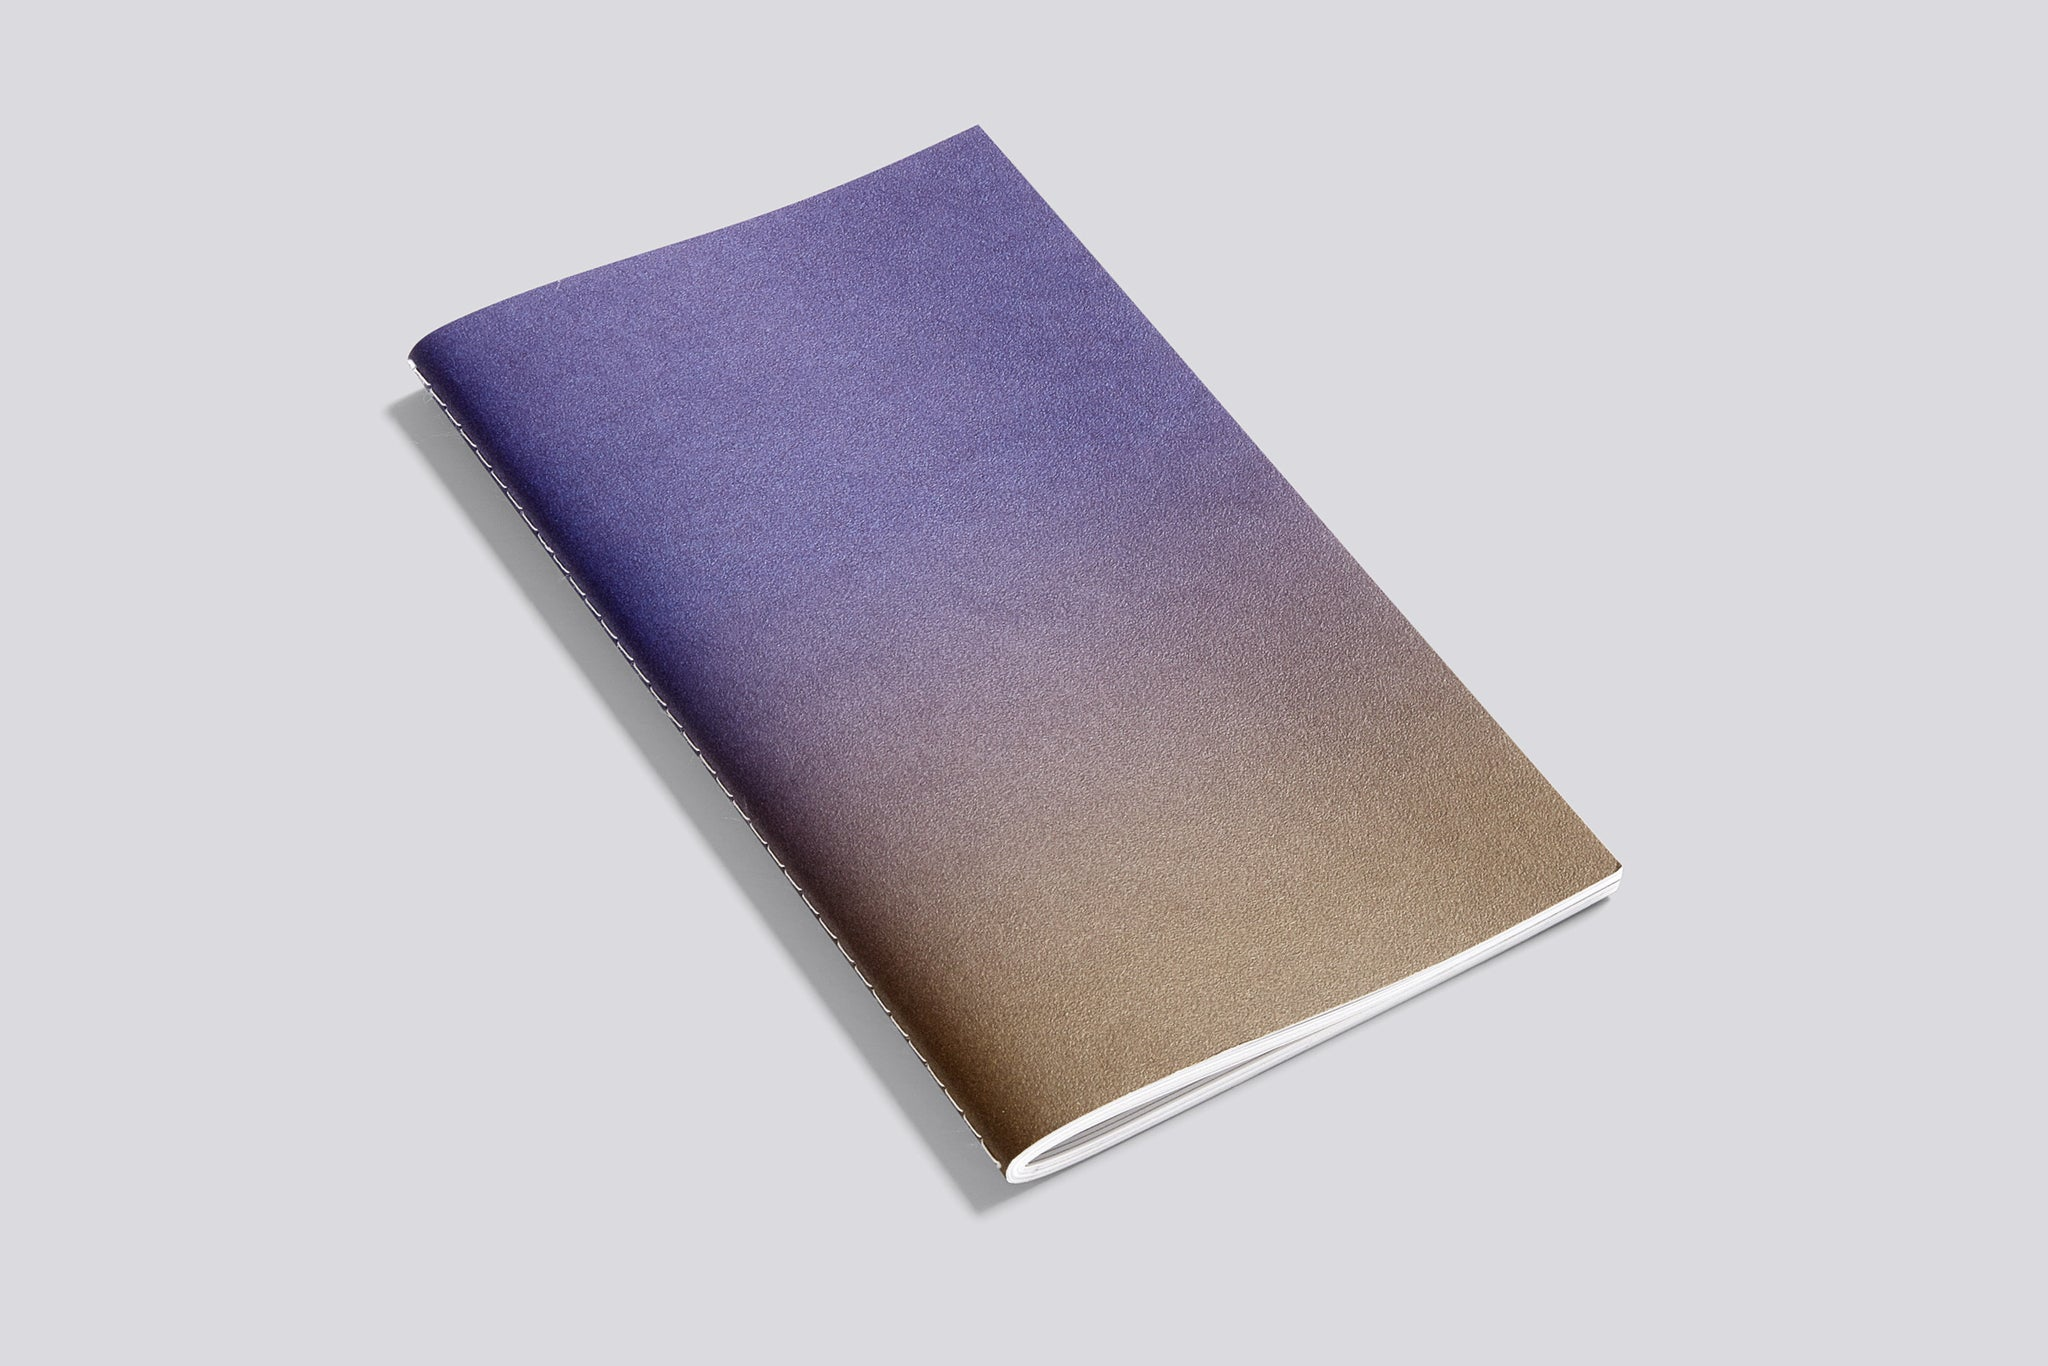 Hay Horizon Notebook, brown-violet